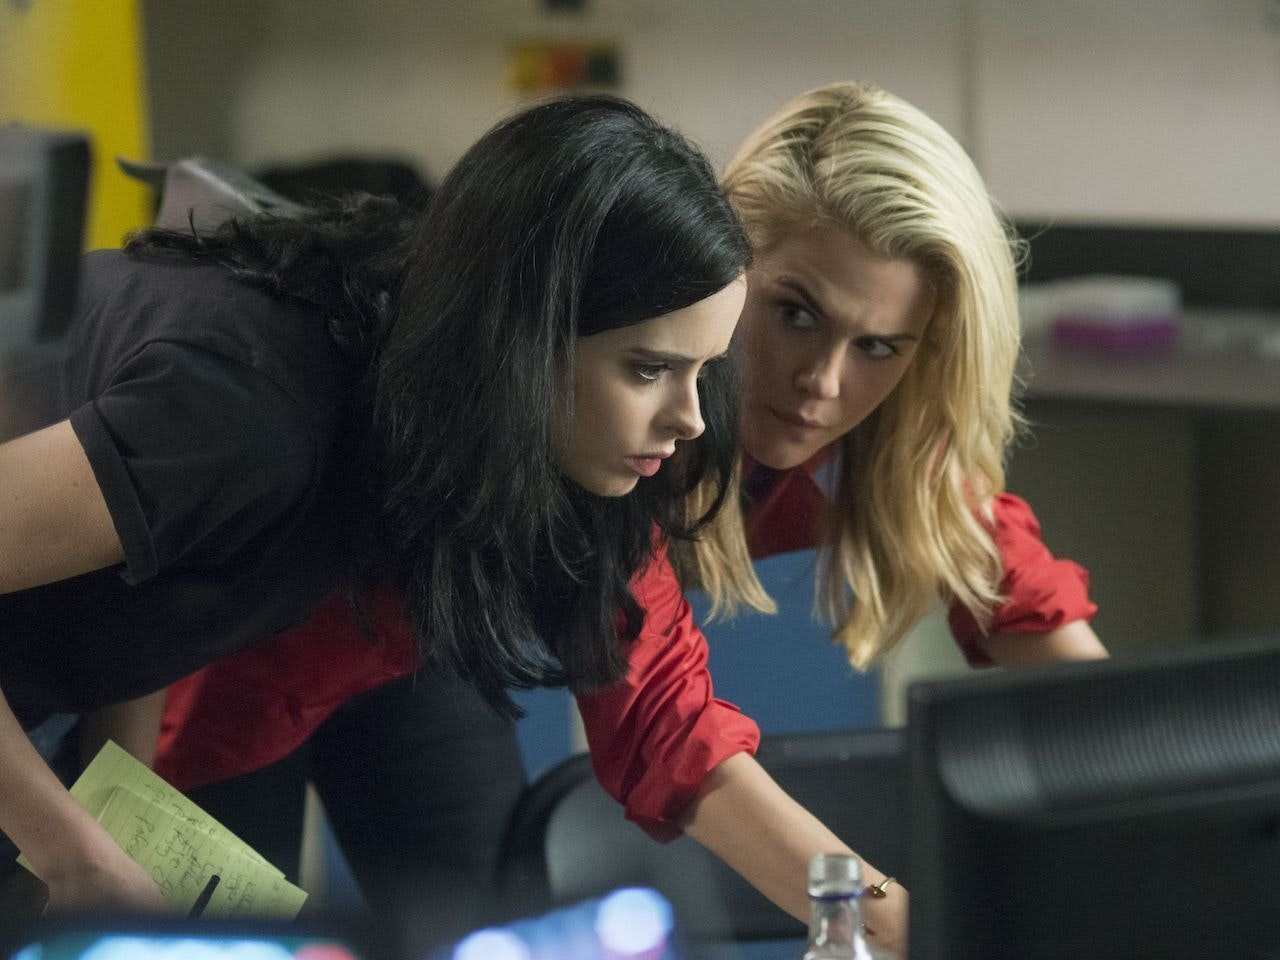 """Will Jessica Jones Season 2 Satisfy Fanfic Shippers? """"One Never Knows"""""""